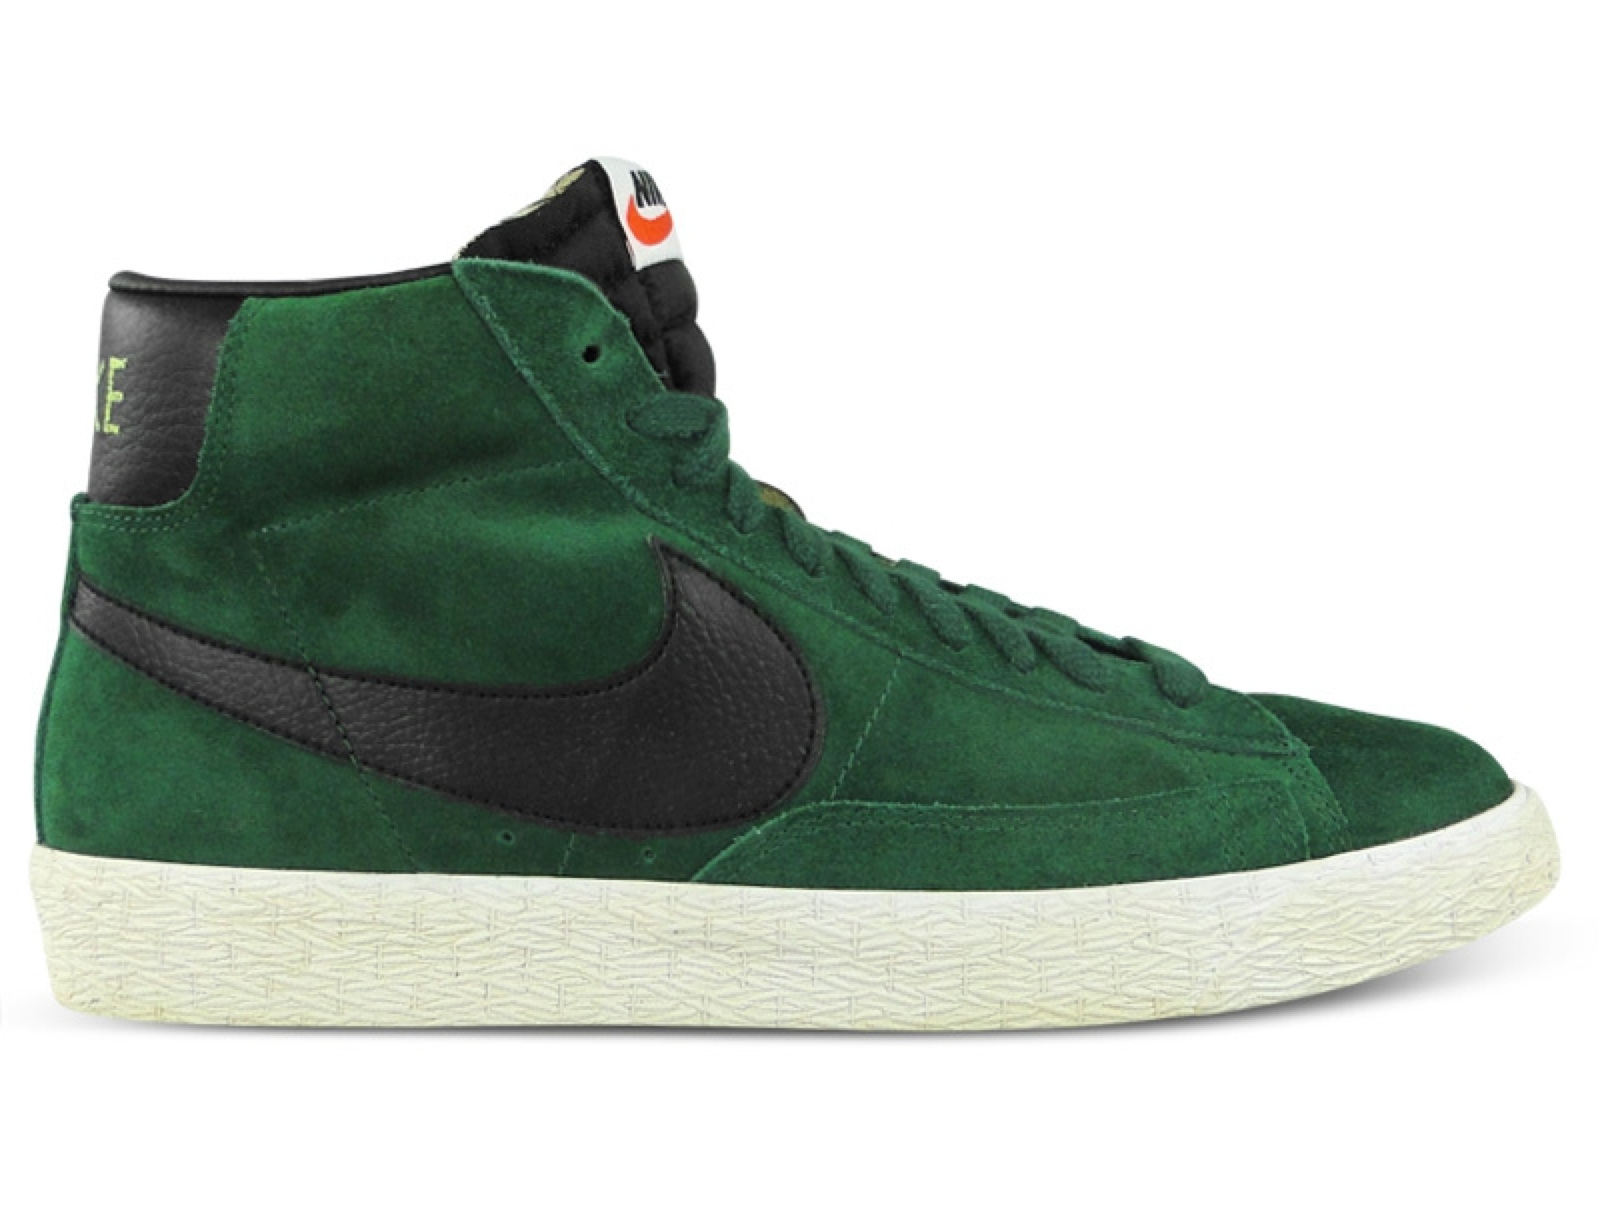 Nike Blazer Mid Premium Suede 'Gorge Green/Black-Atomic Green'